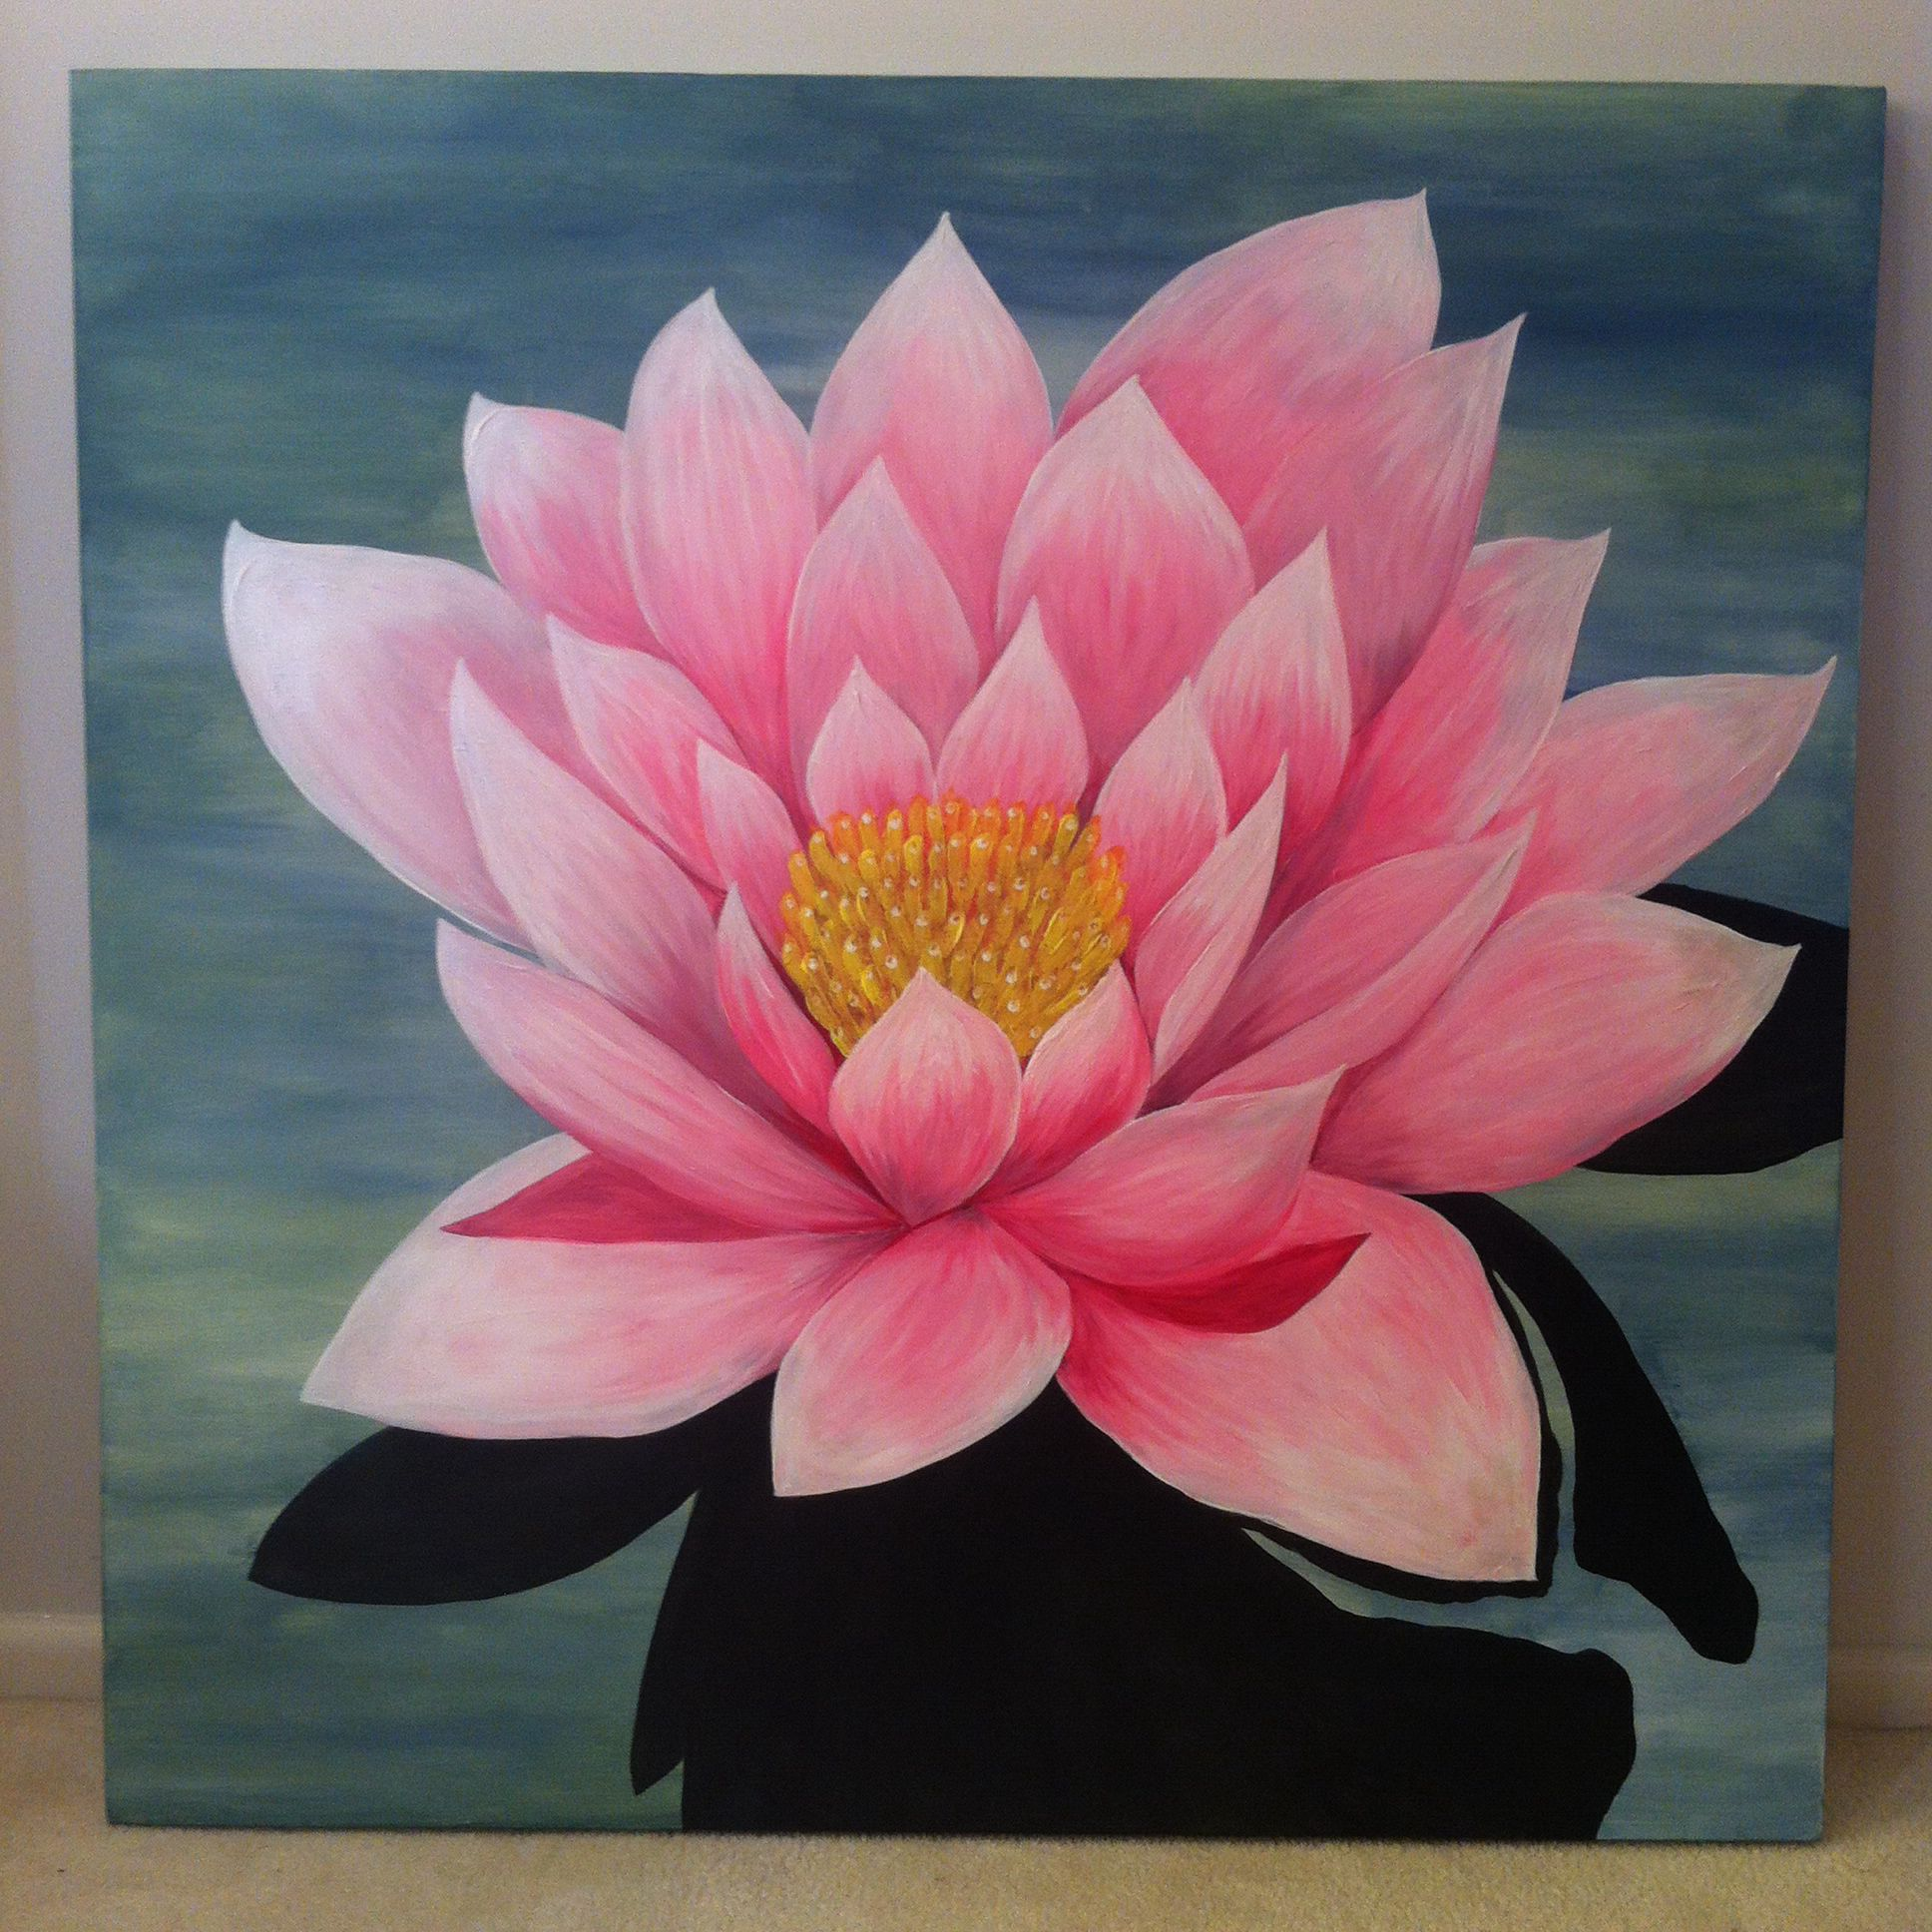 Purity Fortune Wealth Acrylic paint on canvas The lotus flower is